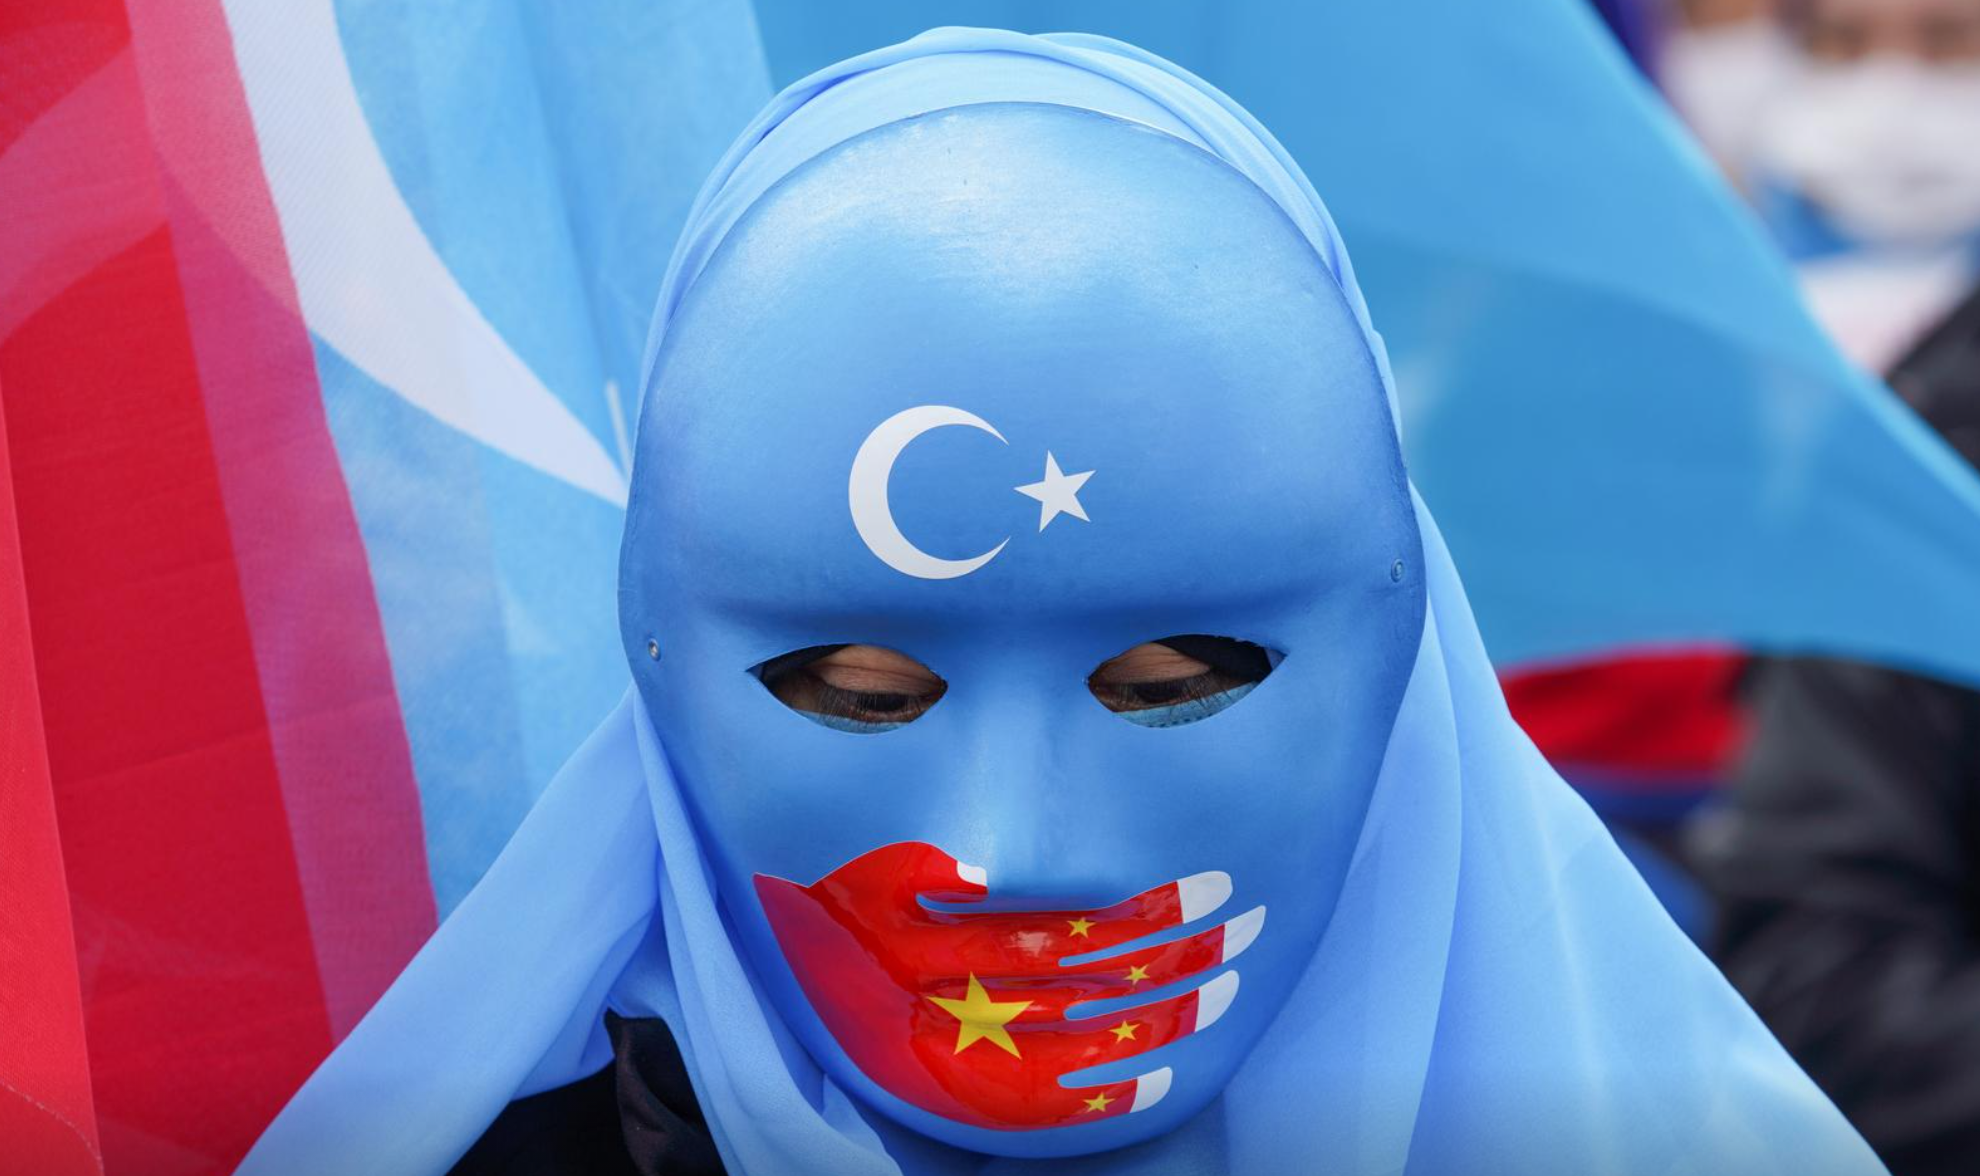 China condemns Turkish leaders' comments about human rights abuses in Xinjiang